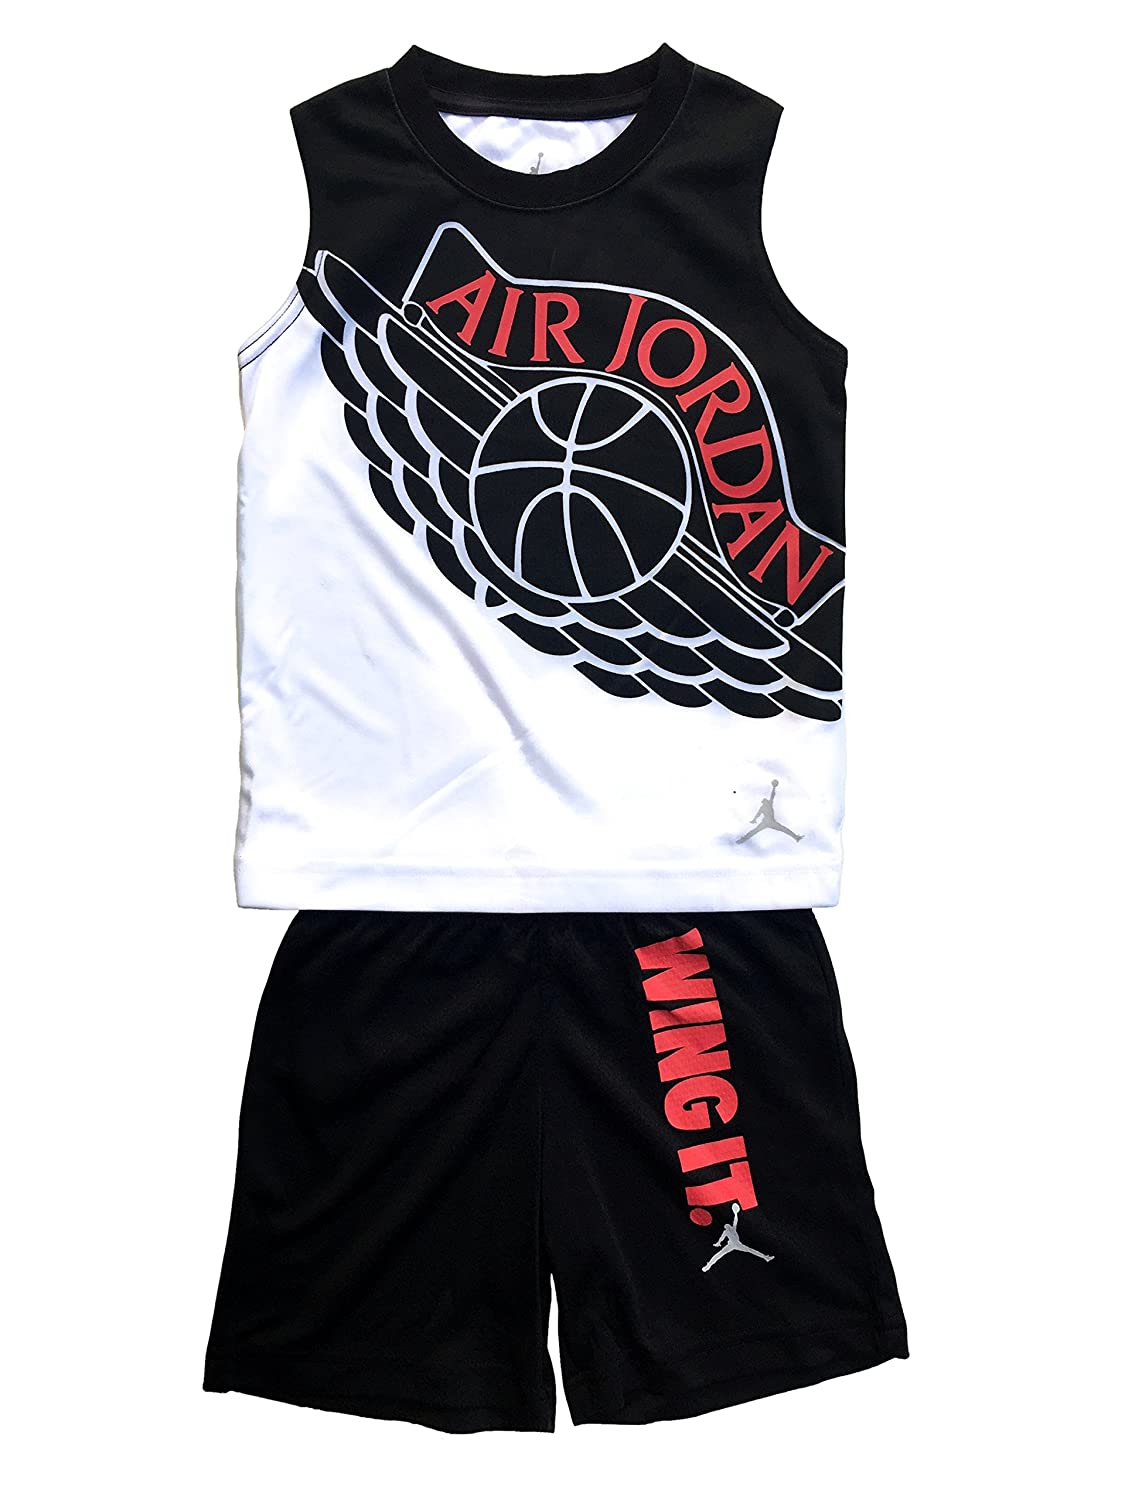 Jordan Nike Air Jumpman Boys 2-Piece Top and Shorts Outfit Set